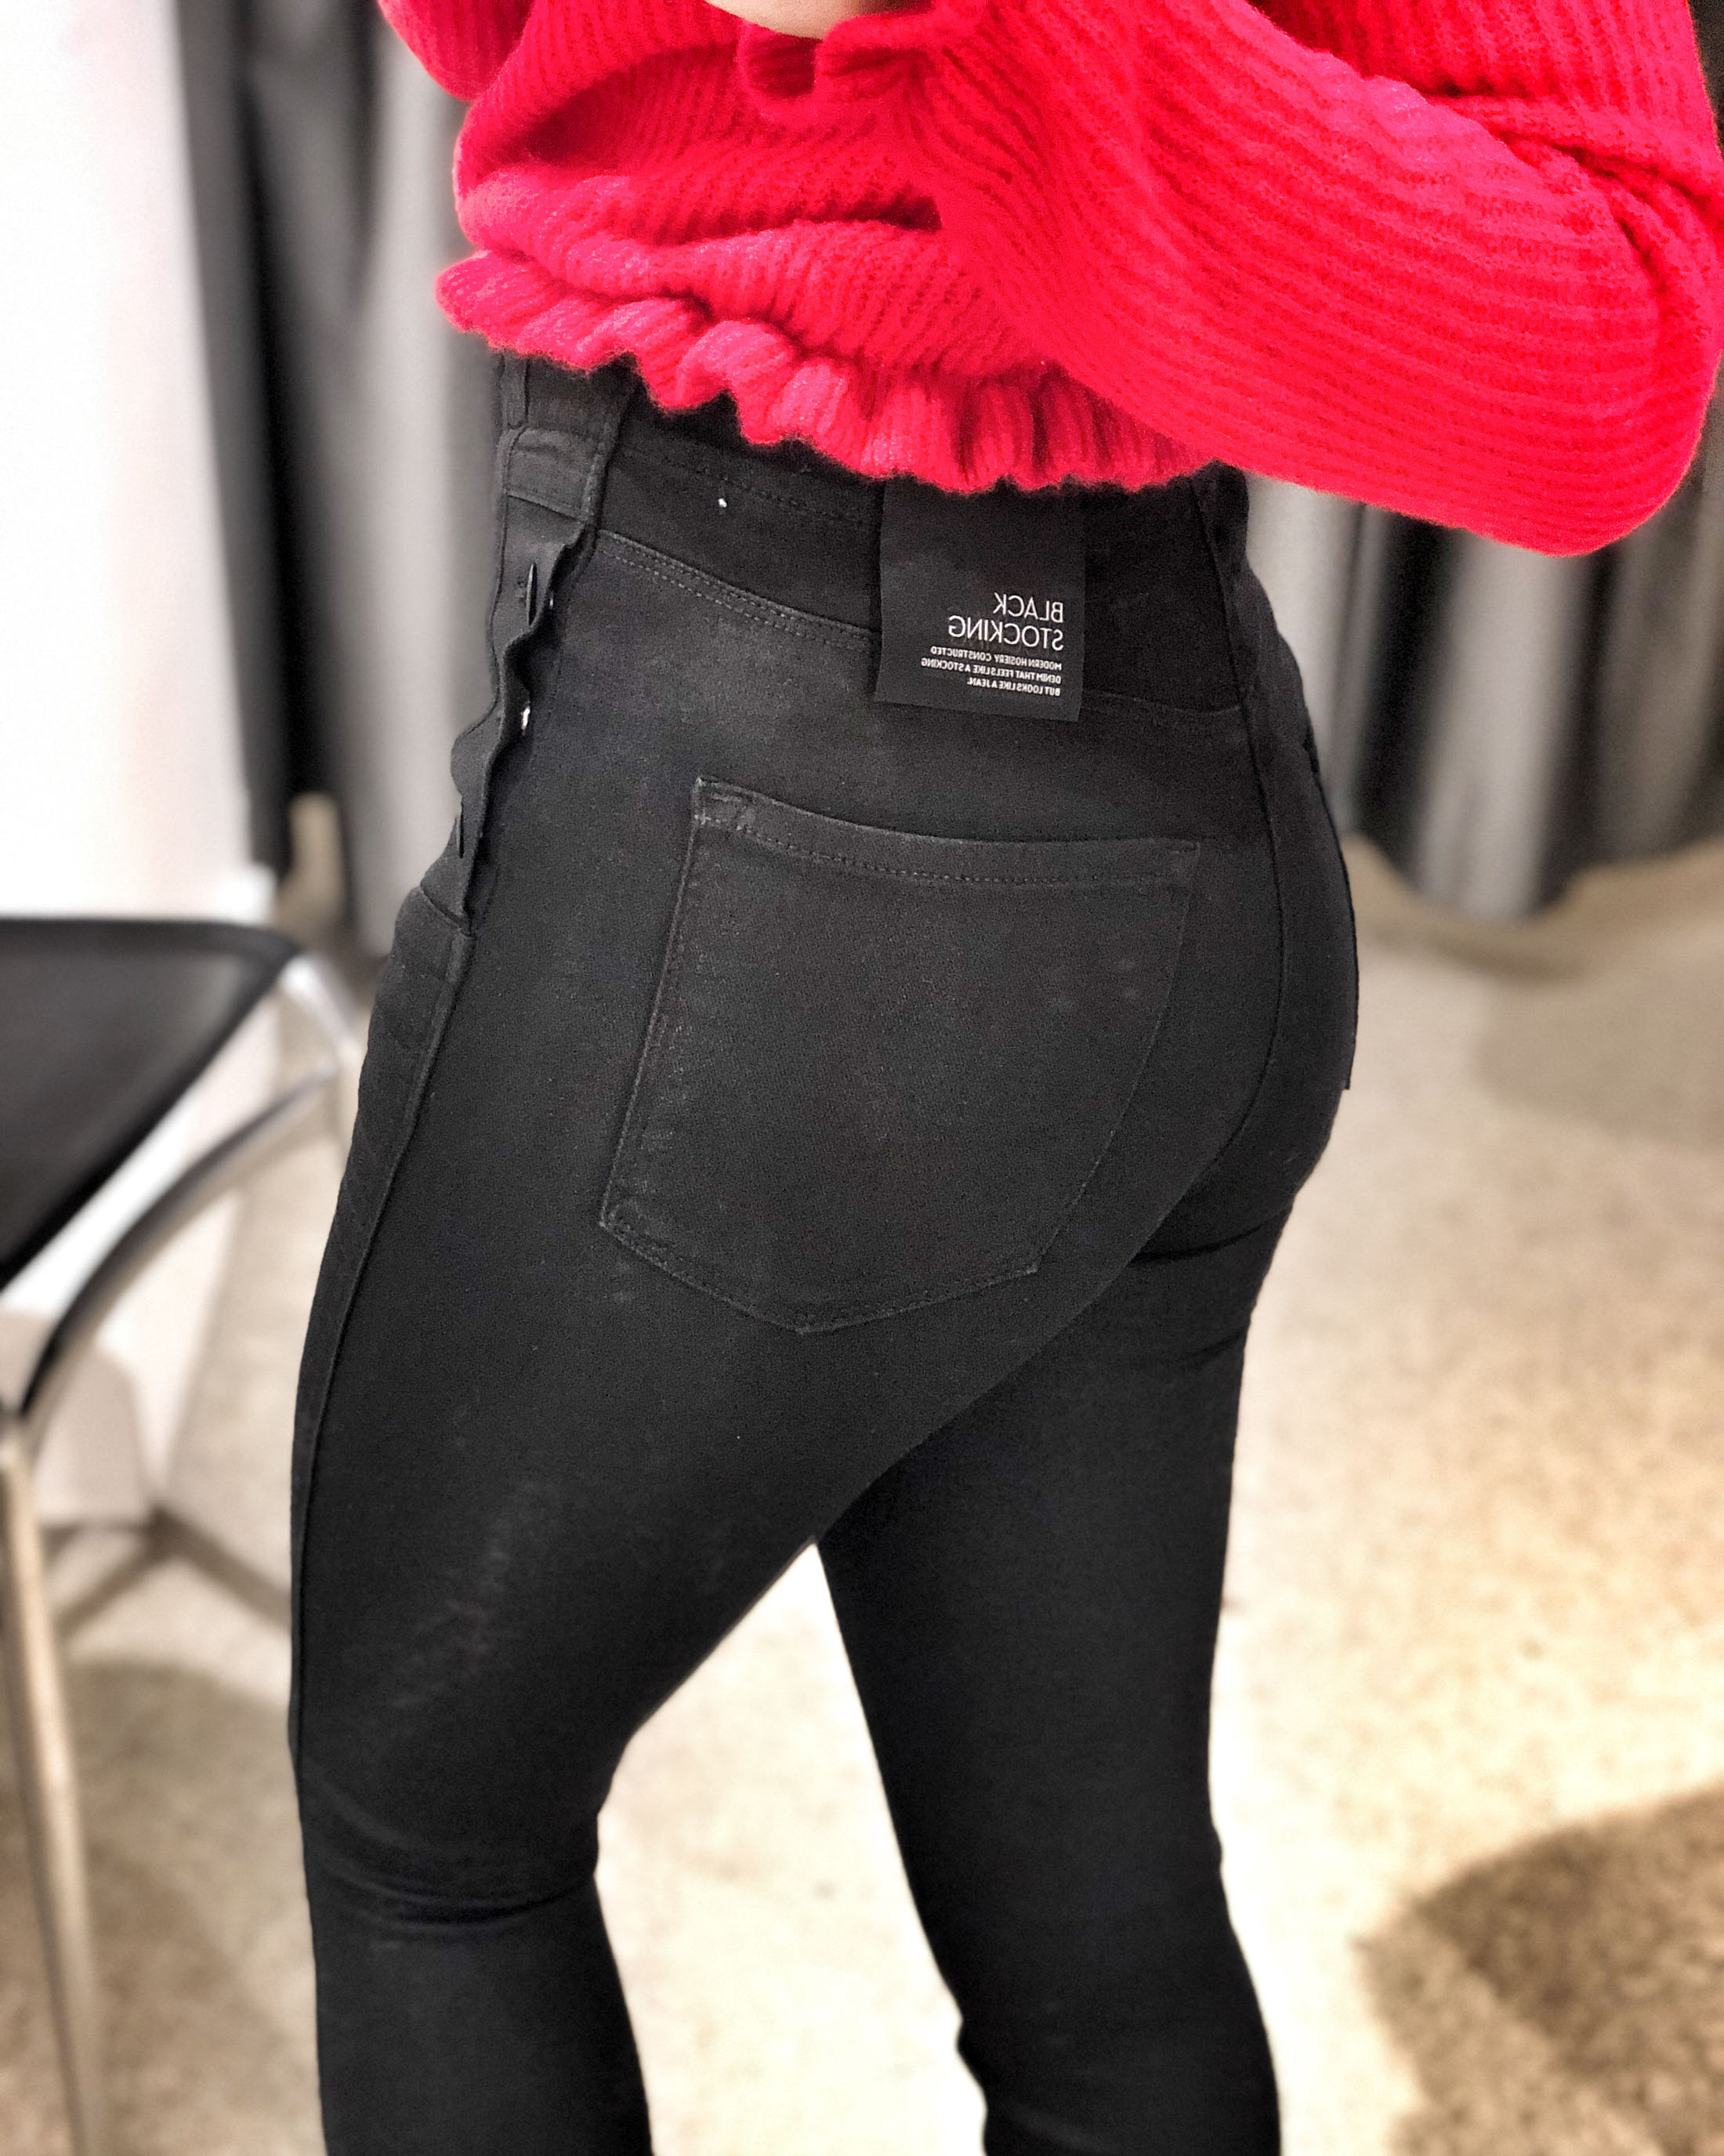 We're all about the flattering coverage high-rise & high-waist jeans provide & we've got our eye on J Brand's new super skinny denim — so many good colors!